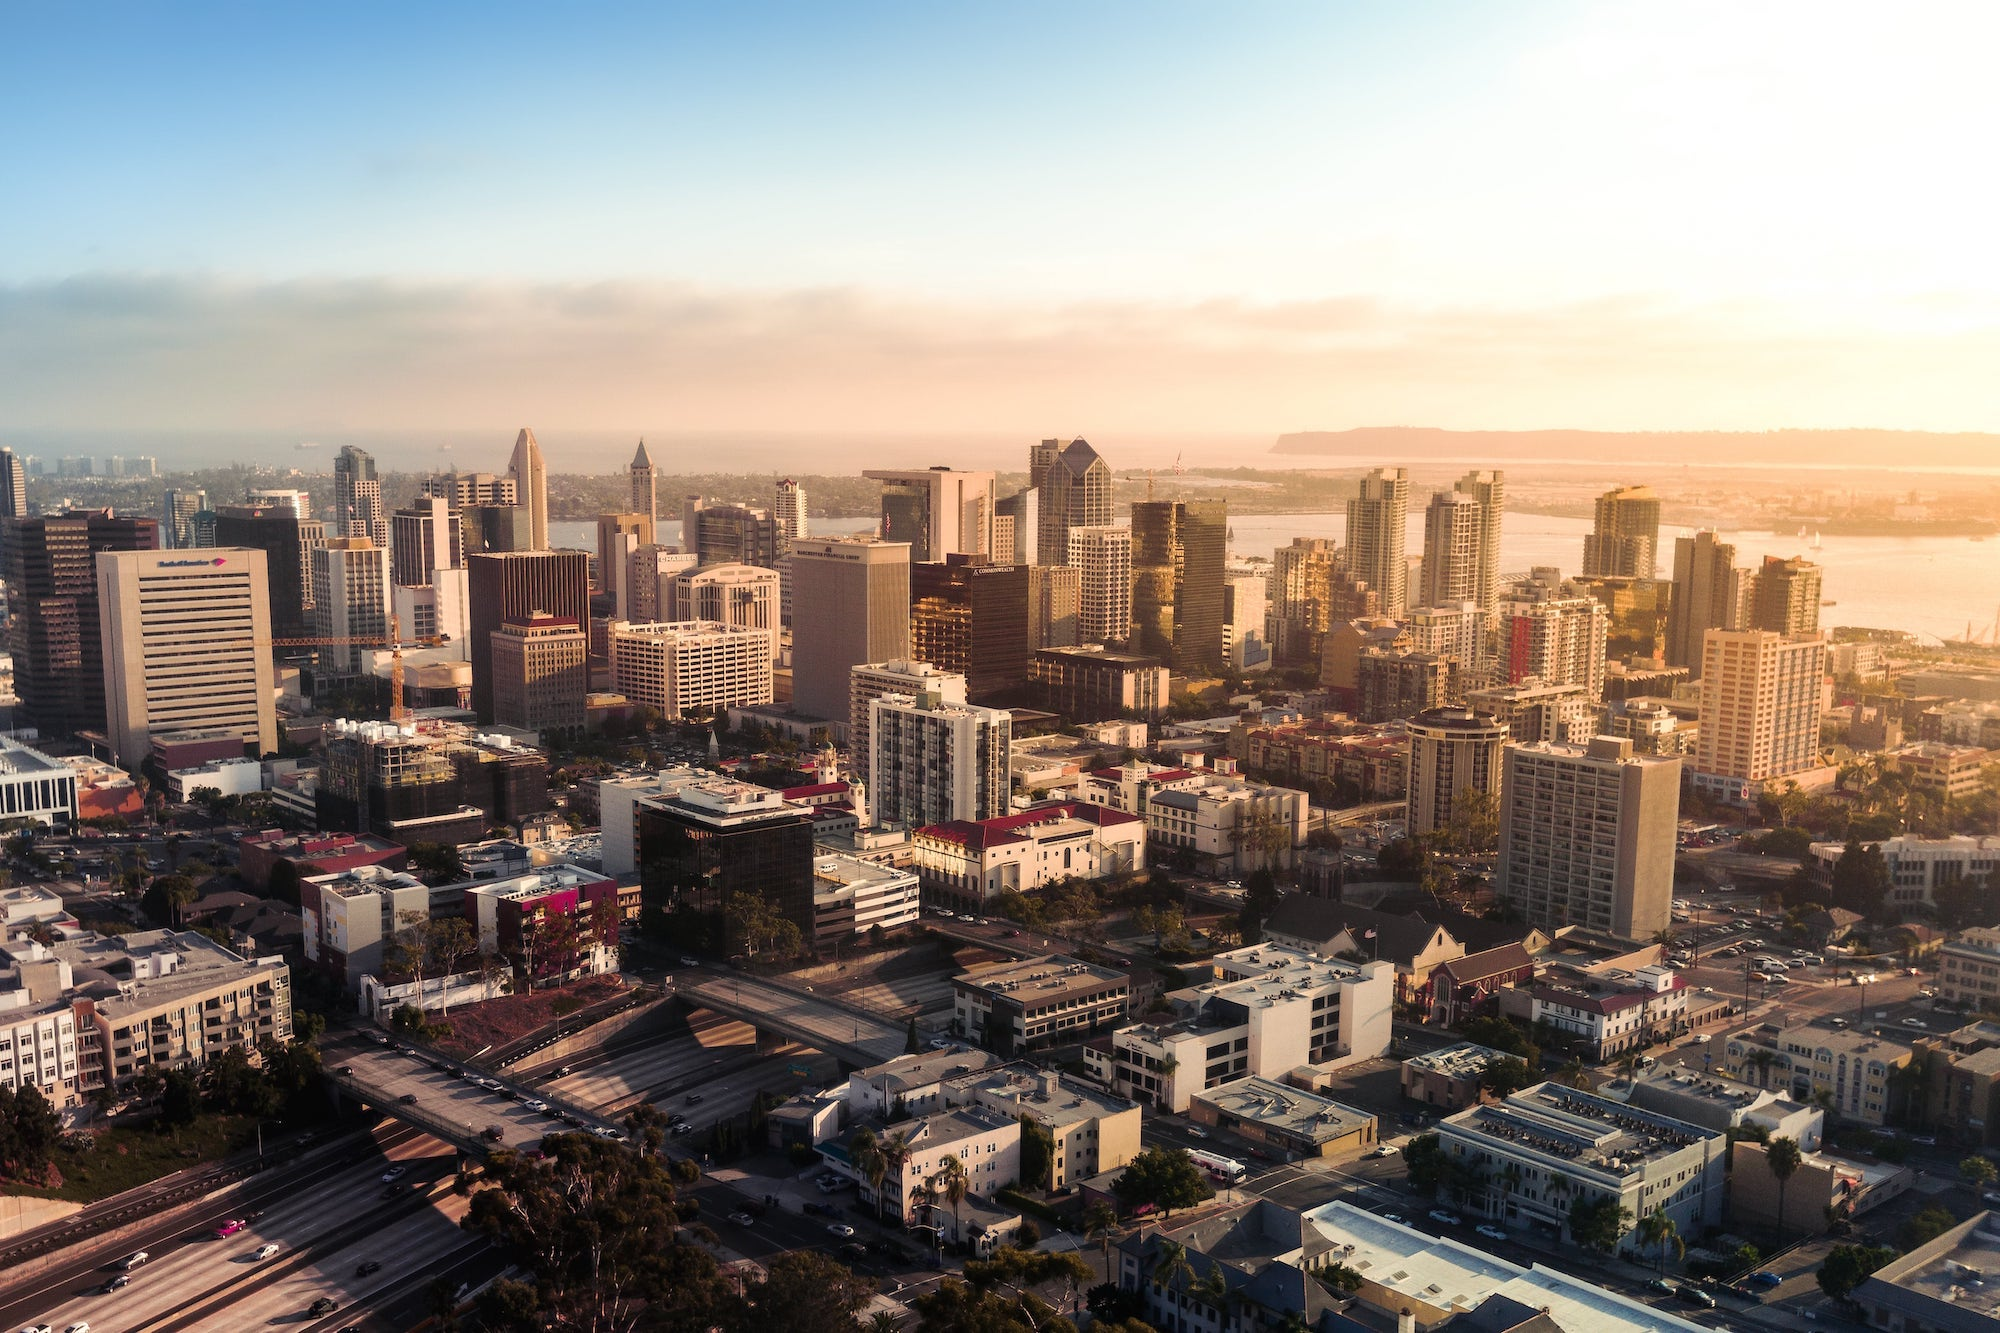 Image of downtown San Diego